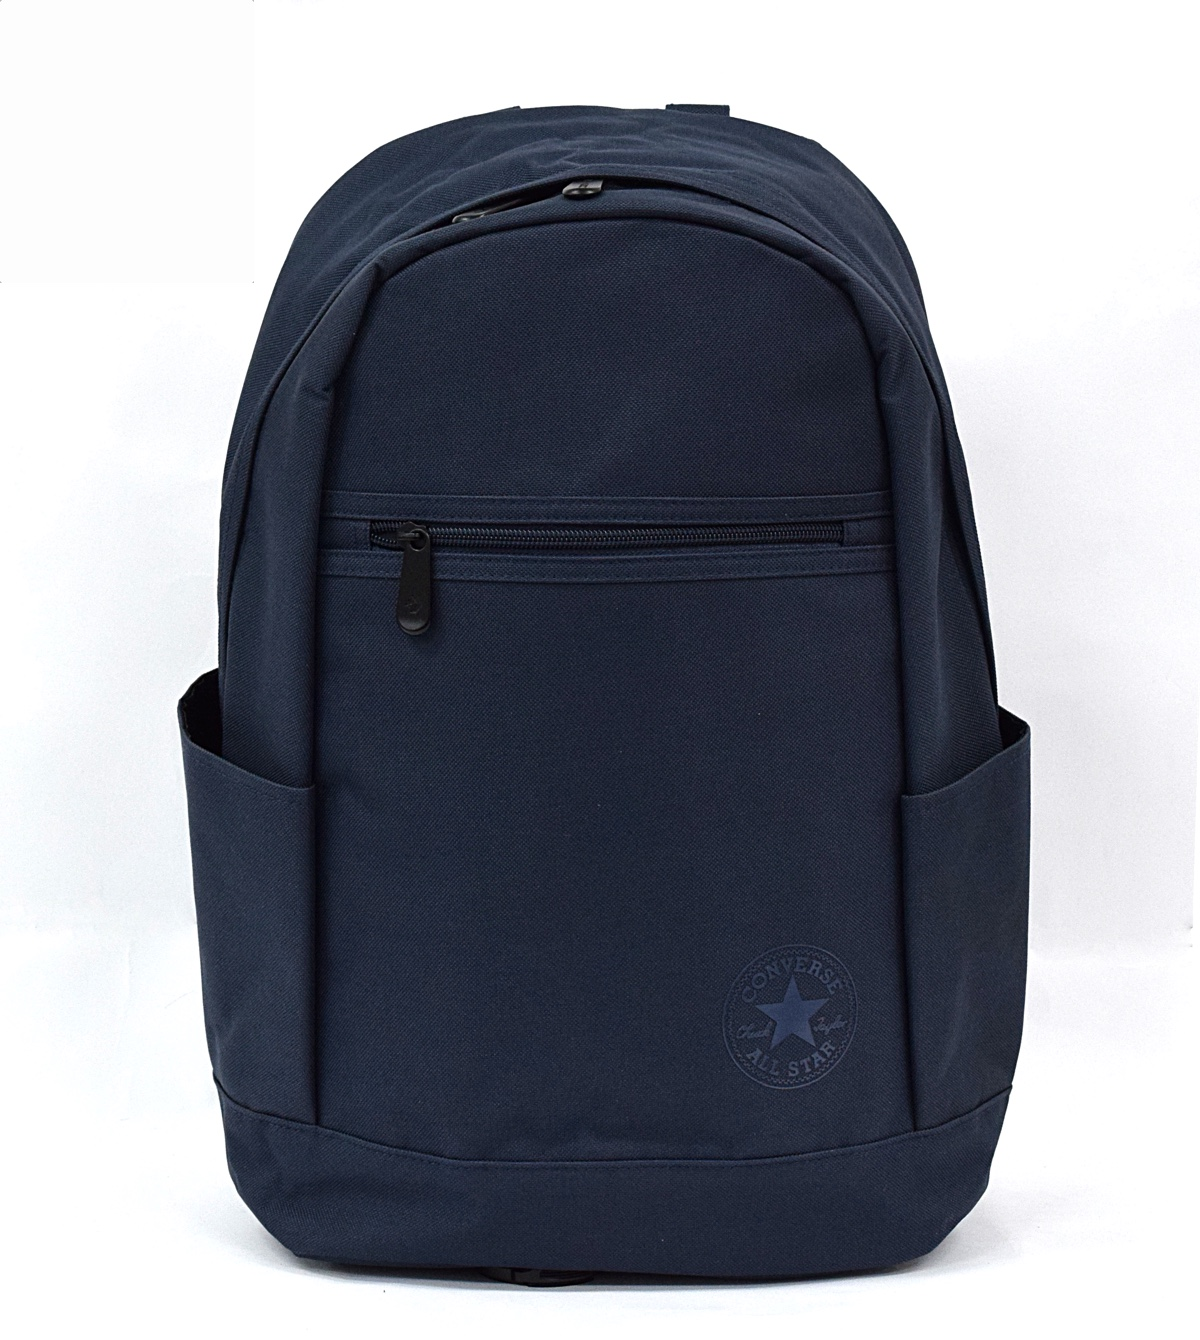 CONVERSE กระเป๋าสะพาย รุ่น Chuck Bis Fifth Backpack - 126000991NY-F (Navy)